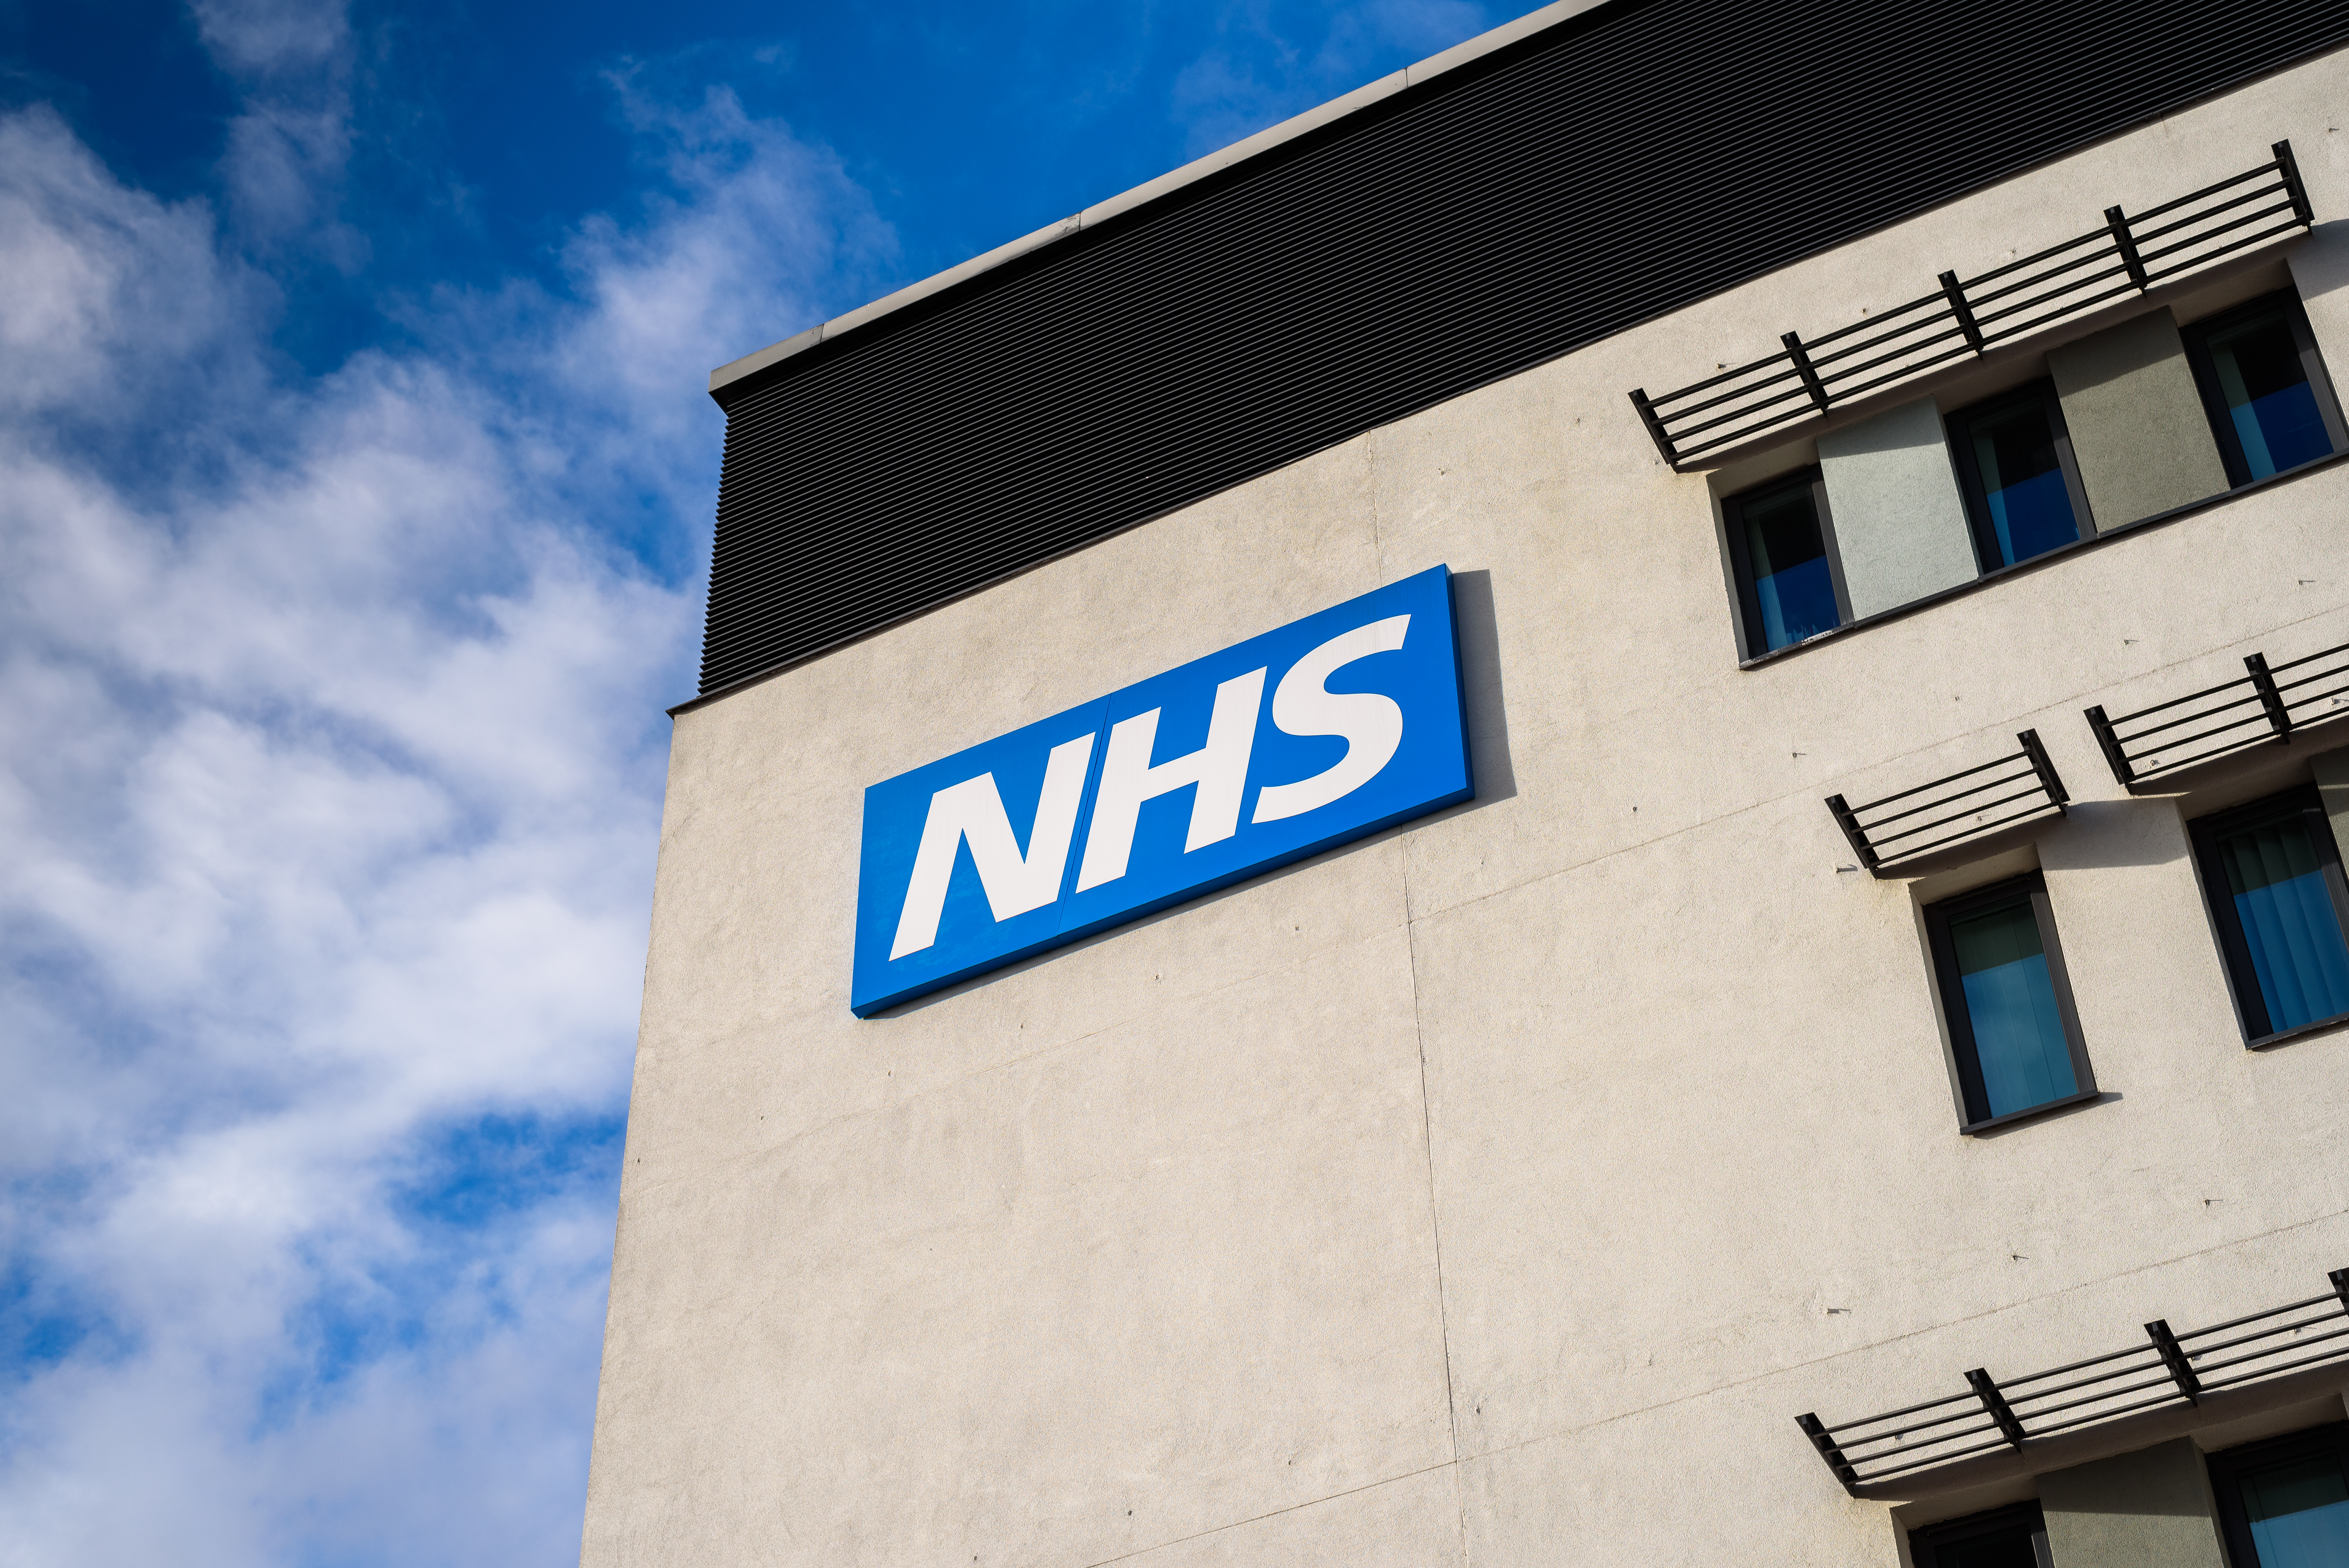 A new long-term NHS plan  was announced on Monday (7)